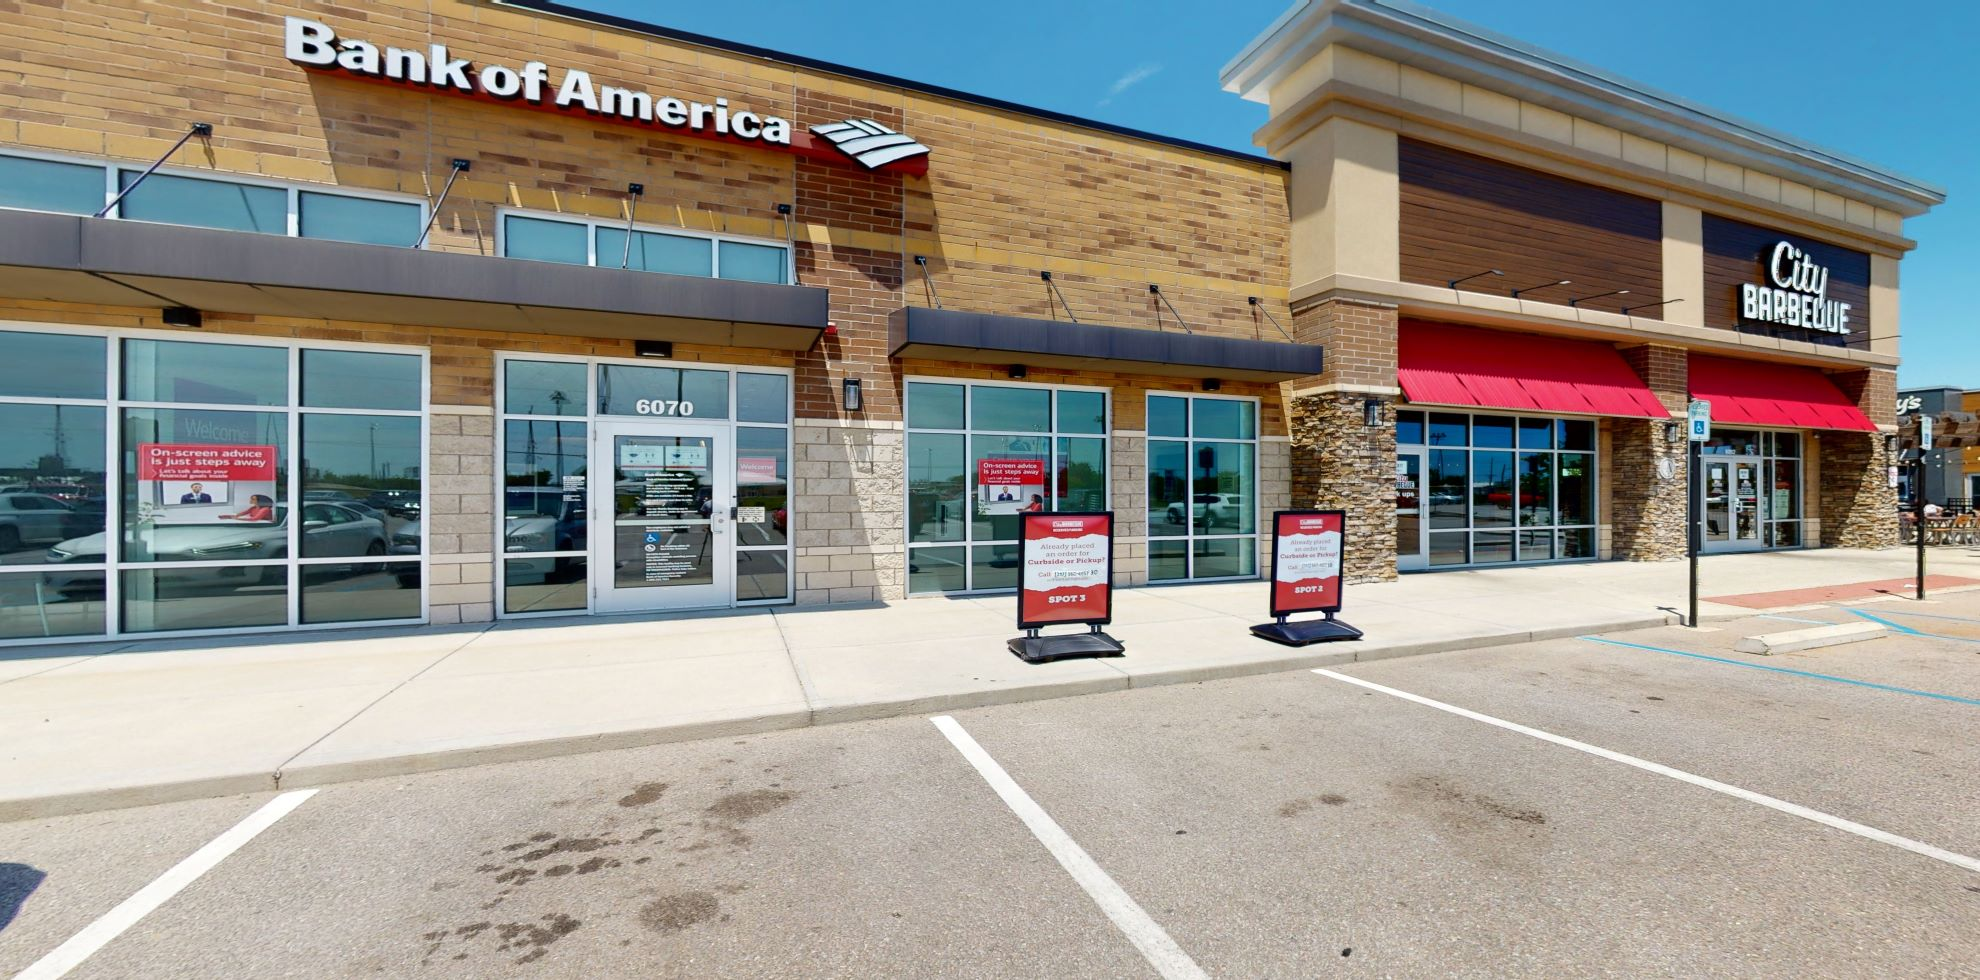 Bank of America Advanced Center with walk-up ATM   6070 Whitestown Pkwy, Whitestown, IN 46075